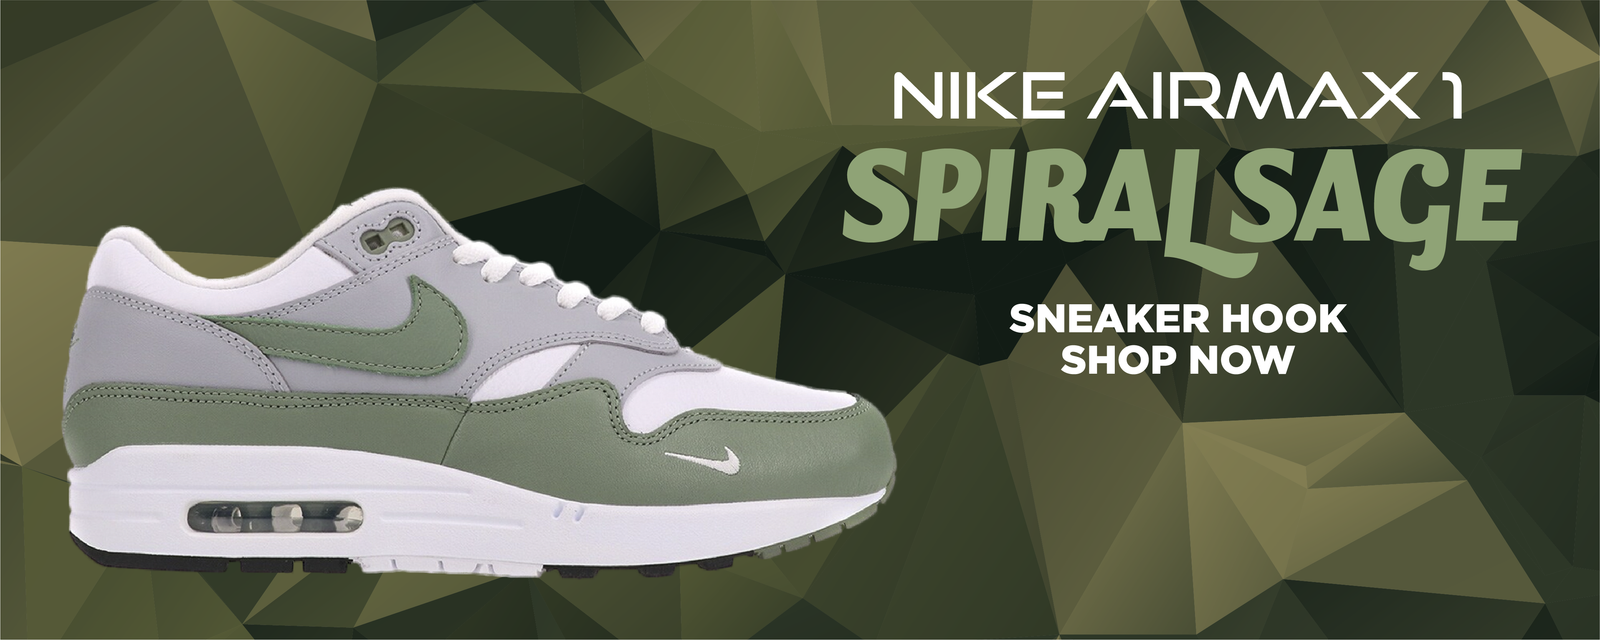 Air Max 1 Spiral Sage Clothing to match Sneakers | Clothing to match Nike Air Max 1 Spiral Sage Shoes